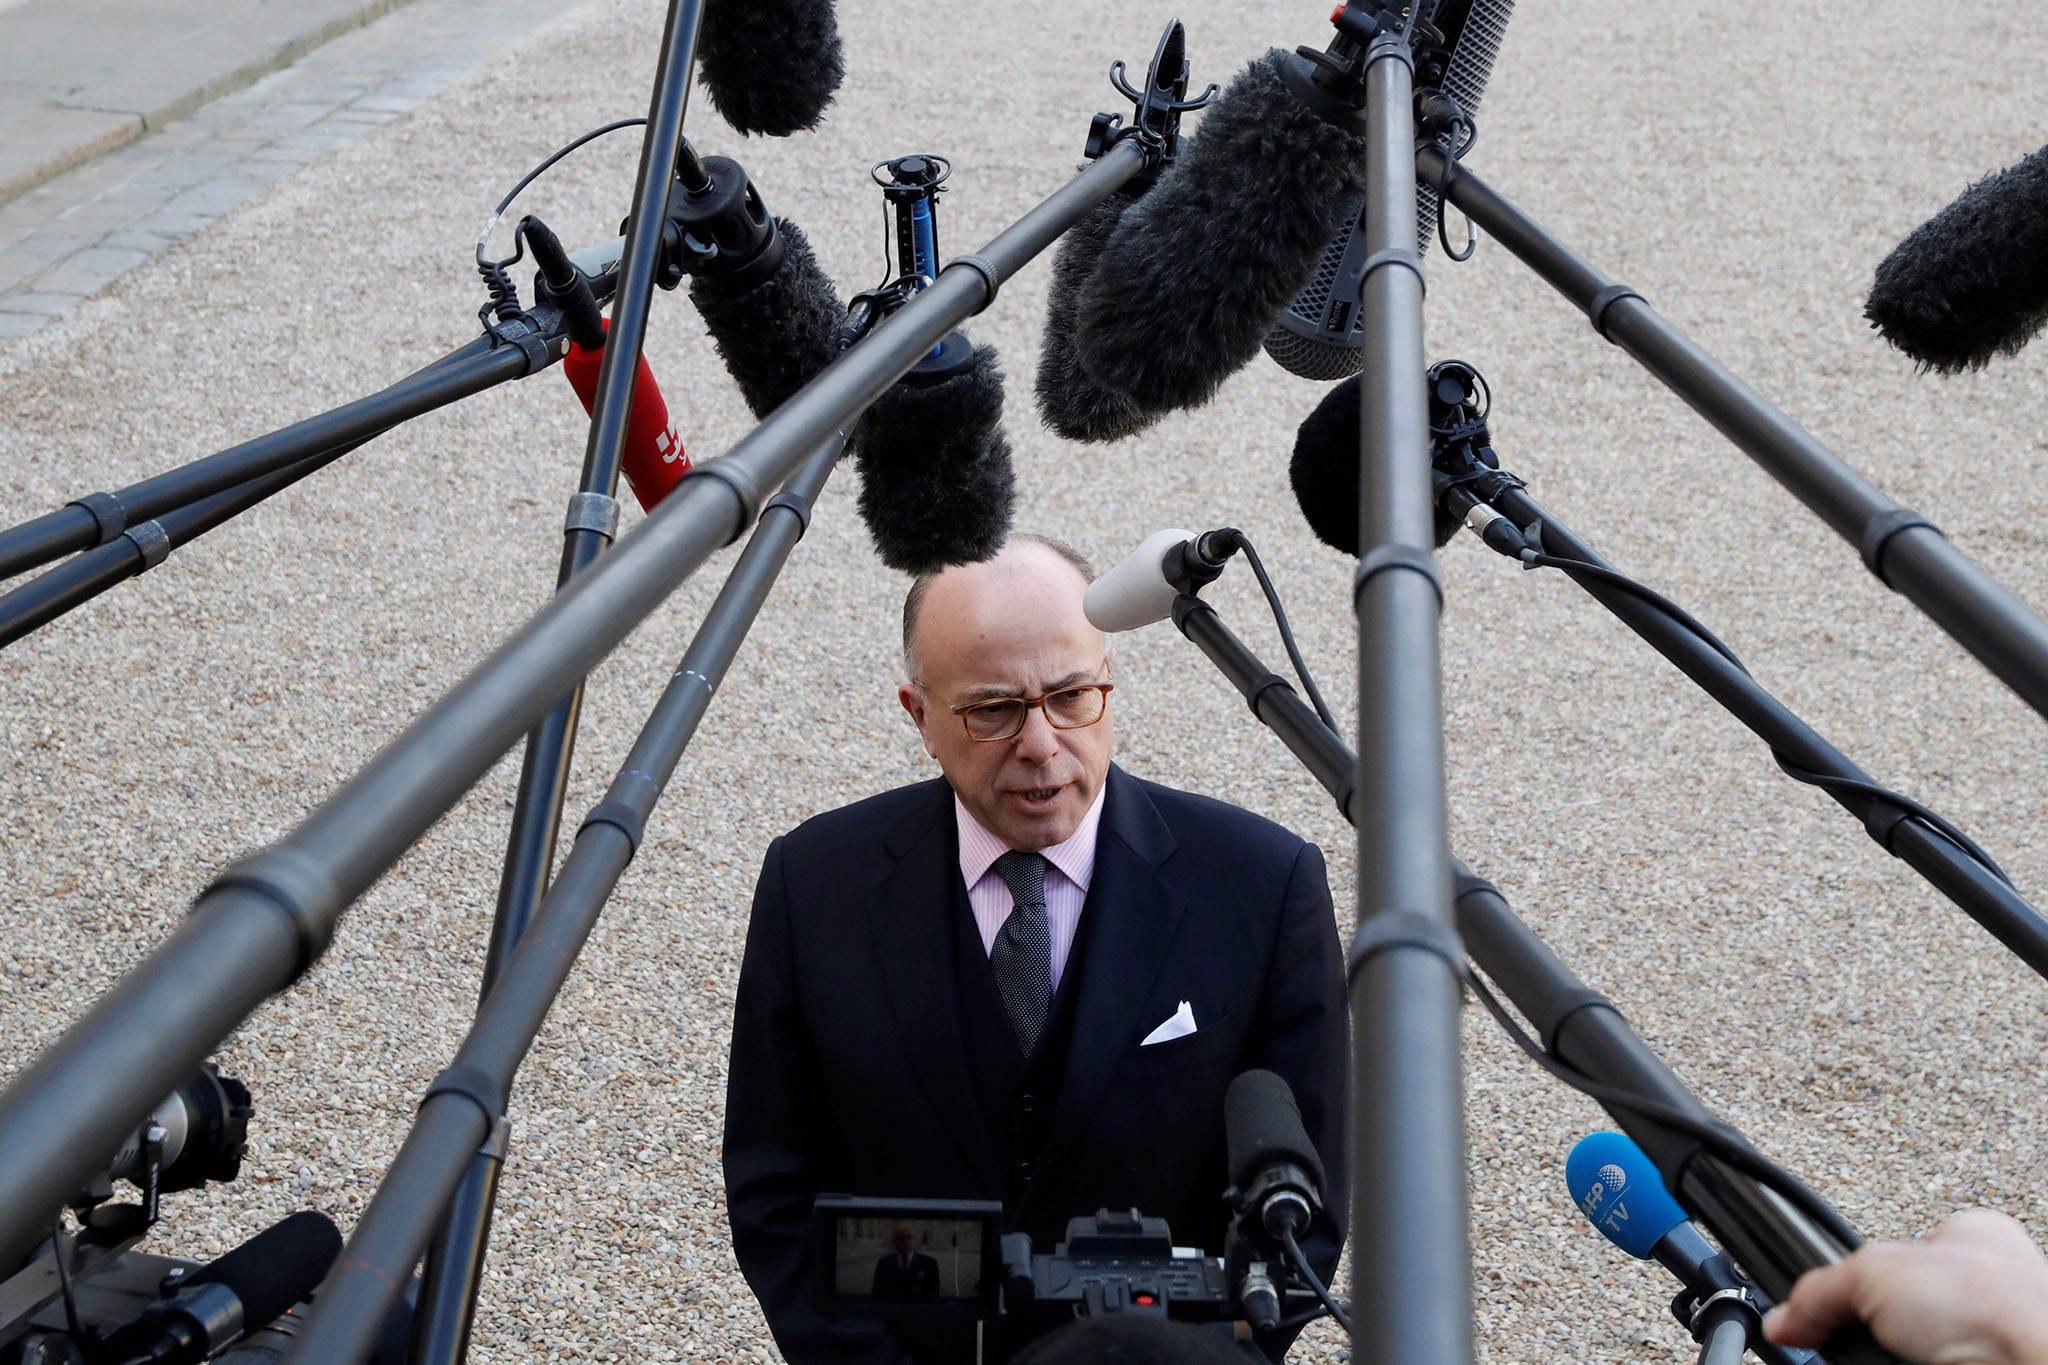 Newly appointed French Prime Minister Bernard Cazeneuve talks to journalists on December 7, 2016 after their first cabinet meeting at the Elysee Palace in Paris. / AFP PHOTO / Patrick KOVARIKPATRICK KOVARIK/AFP/Getty Images